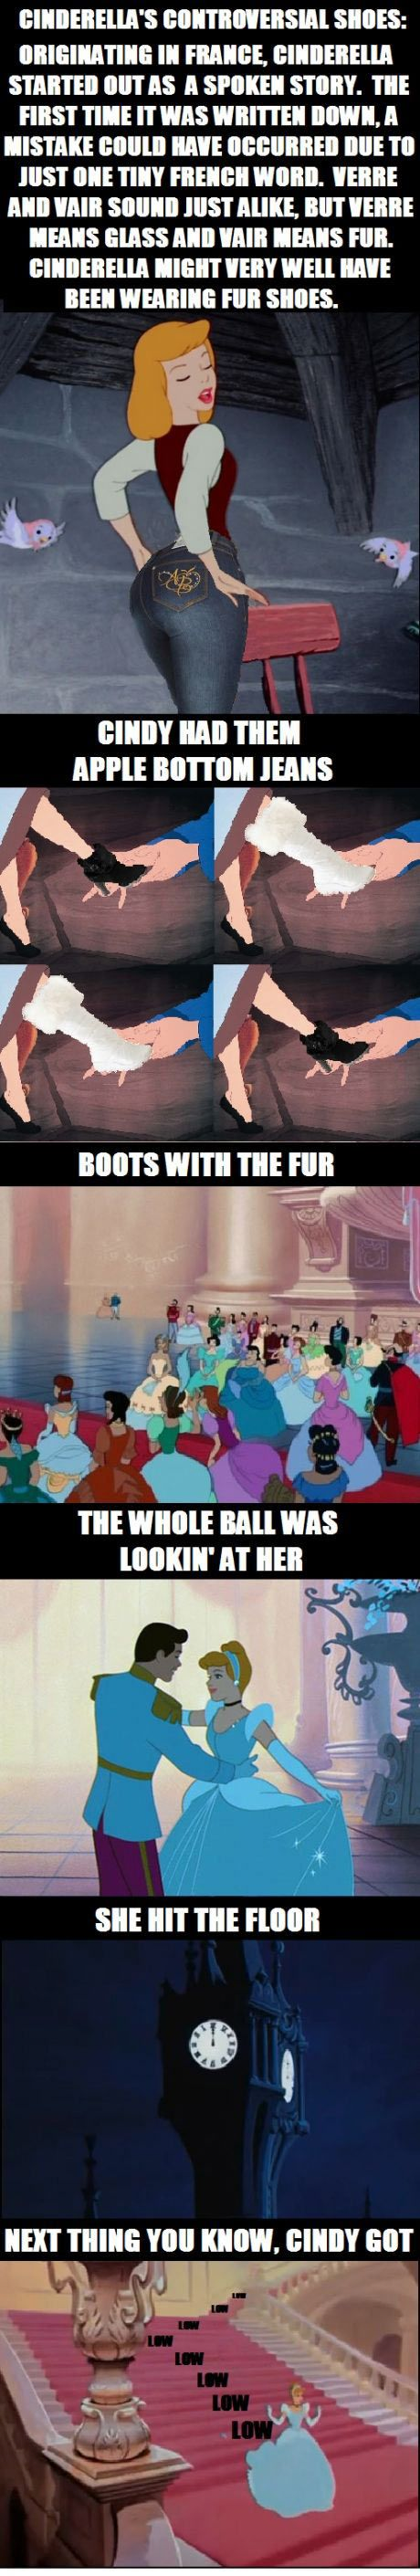 What if Cinderella really had fur shoes?